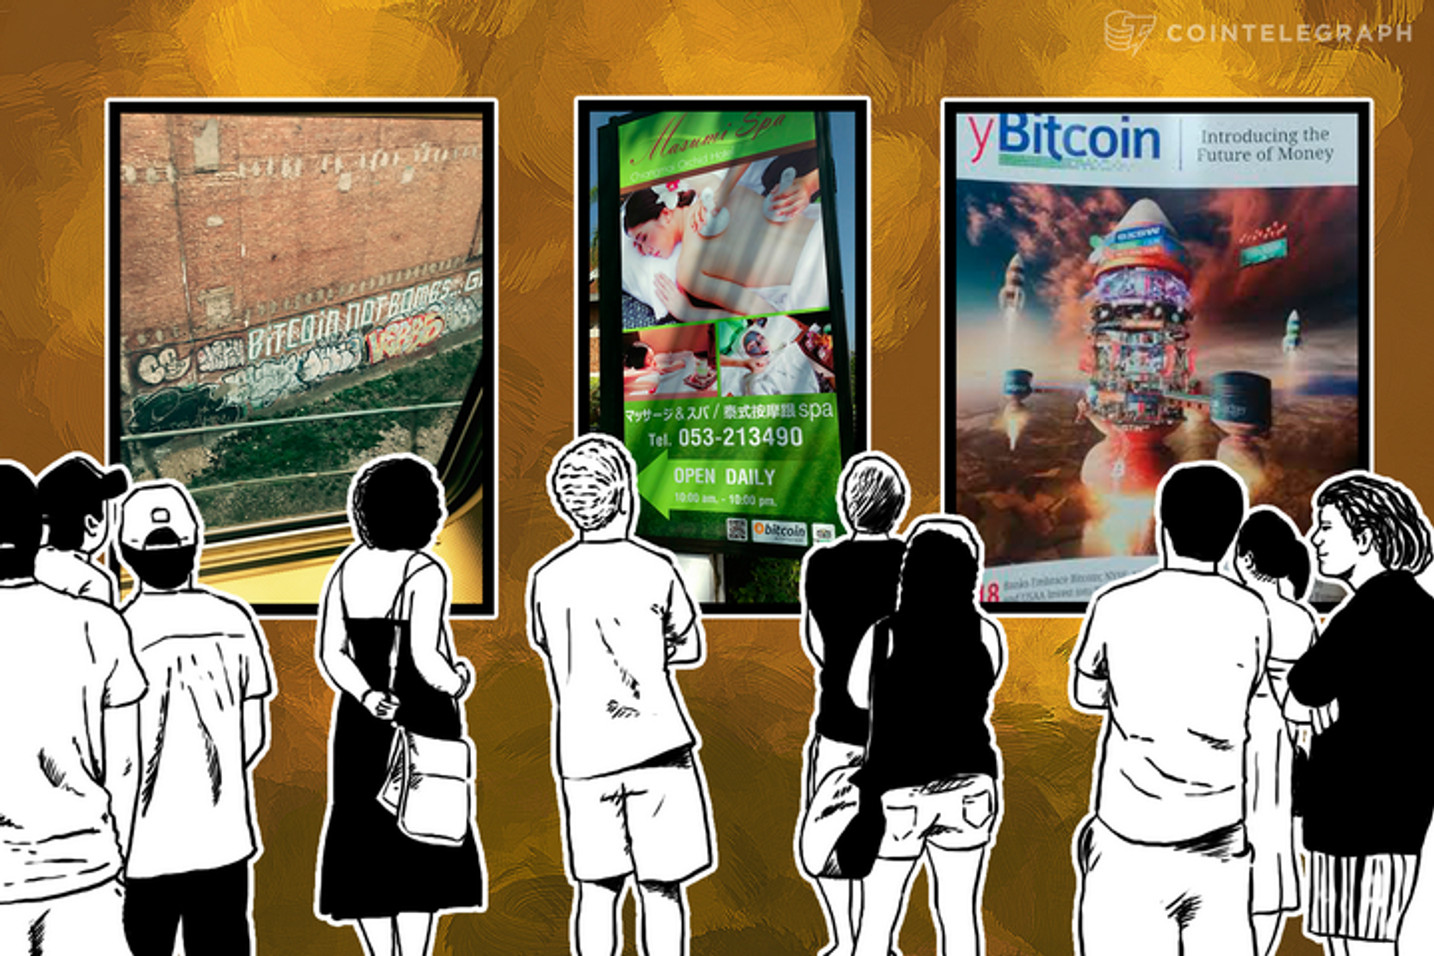 This Week's Bit Pics: Crypto Time Capsule, $1000 Tip, Bits on the Strip